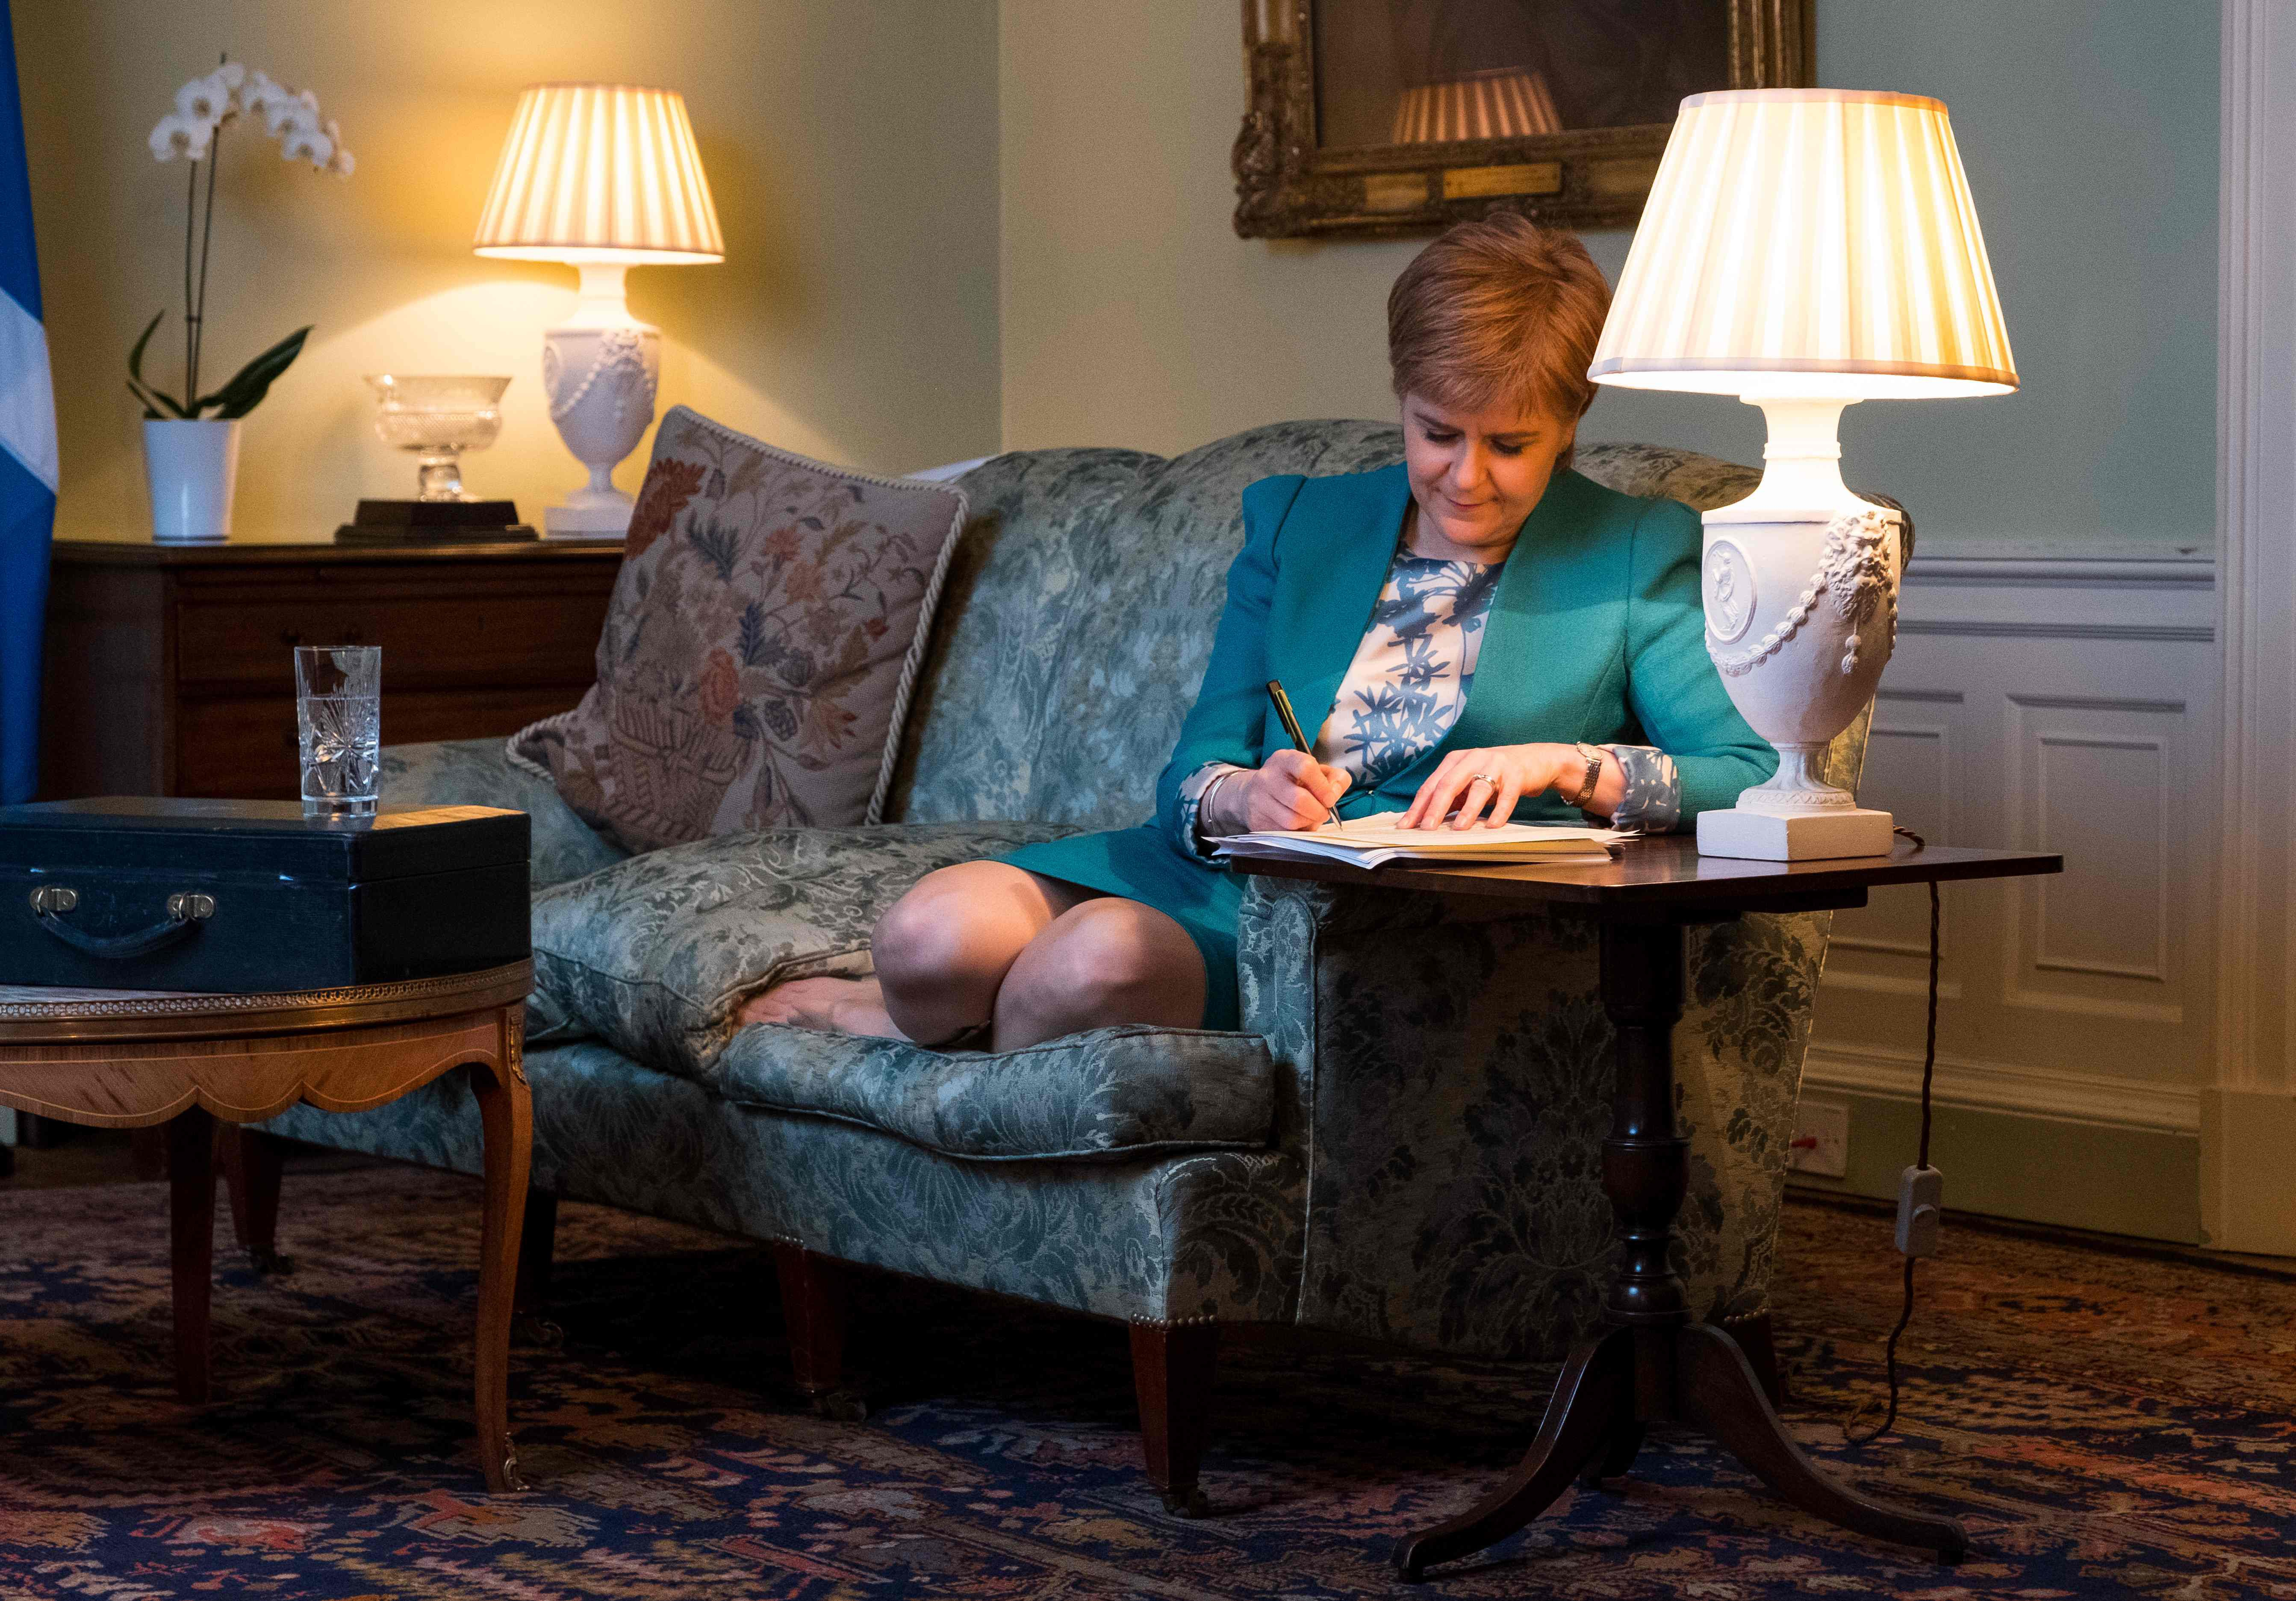 "TOPSHOT - A handout picture released by The Scottish Government on March 30, 2017 shows Scotland's First Minister Nicola Sturgeon working on her Section 30 letter to the British Prime Minister Theresa May requesting a second Scottish independence referendum at Bute House, in Edinburgh on March 30, 2017. / AFP PHOTO / The Scottish Government / Stuart Nicol / RESTRICTED TO EDITORIAL USE - MANDATORY CREDIT ""AFP PHOTO / THE SCOTTISH GOVERNMENT / STUART NICOL"" - NO MARKETING NO ADVERTISING CAMPAIGNS - DISTRIBUTED AS A SERVICE TO CLIENTS / TT / kod 444"